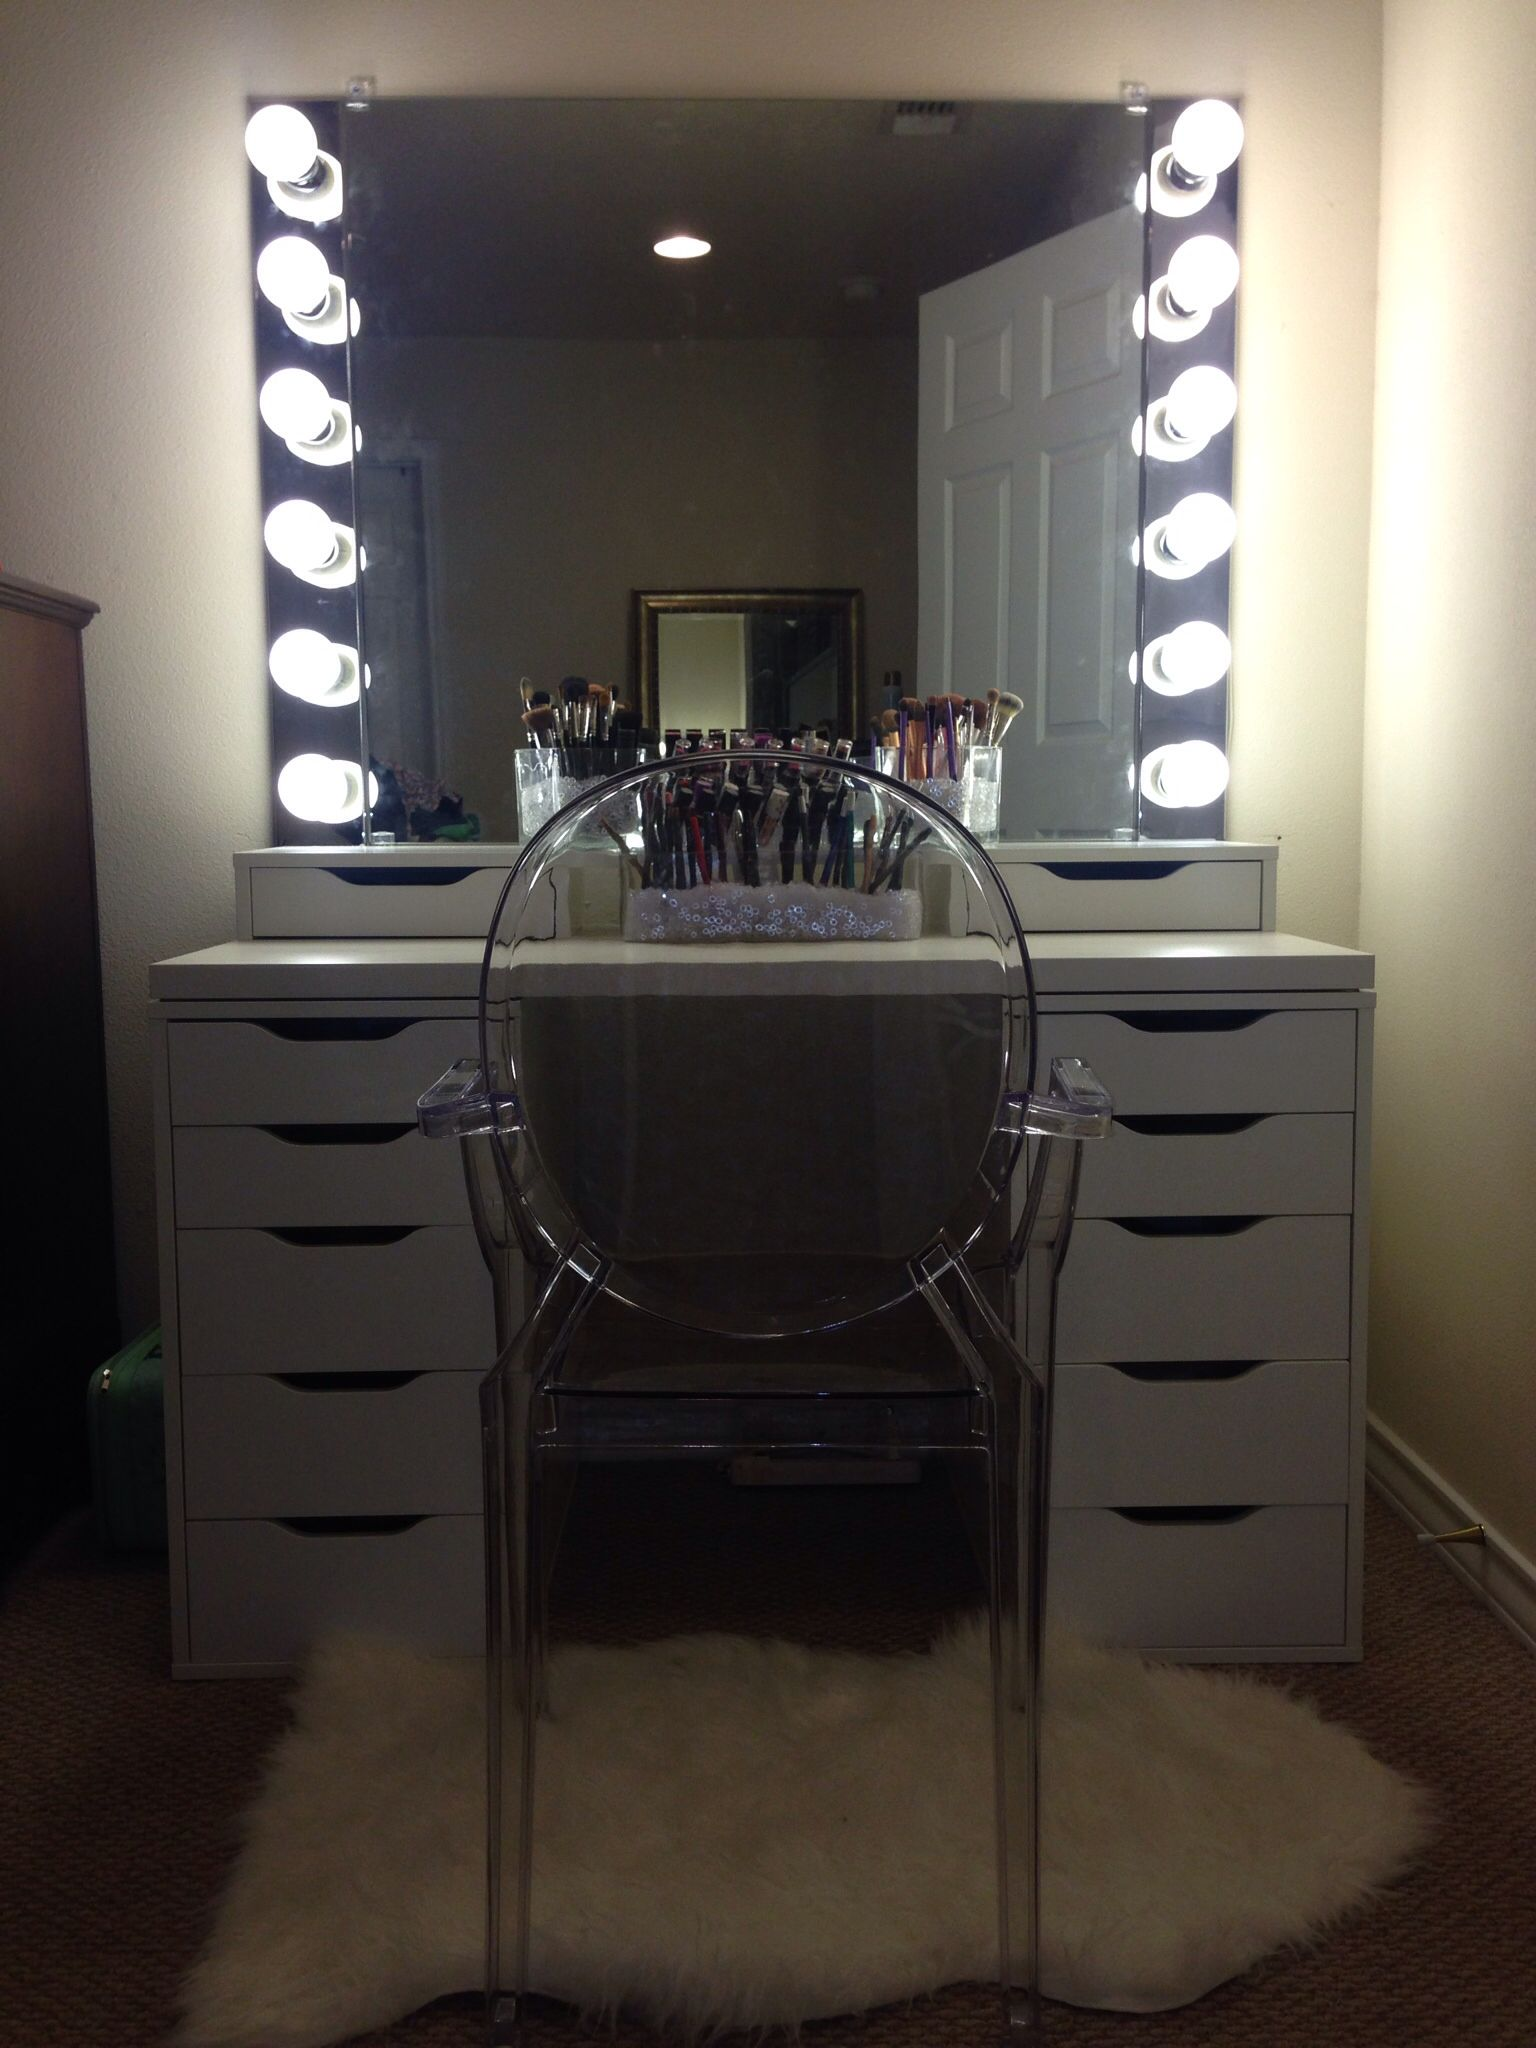 Dressing table mirrors with lights diy ikea vanity with lights  room ideas  pinterest  ikea vanity